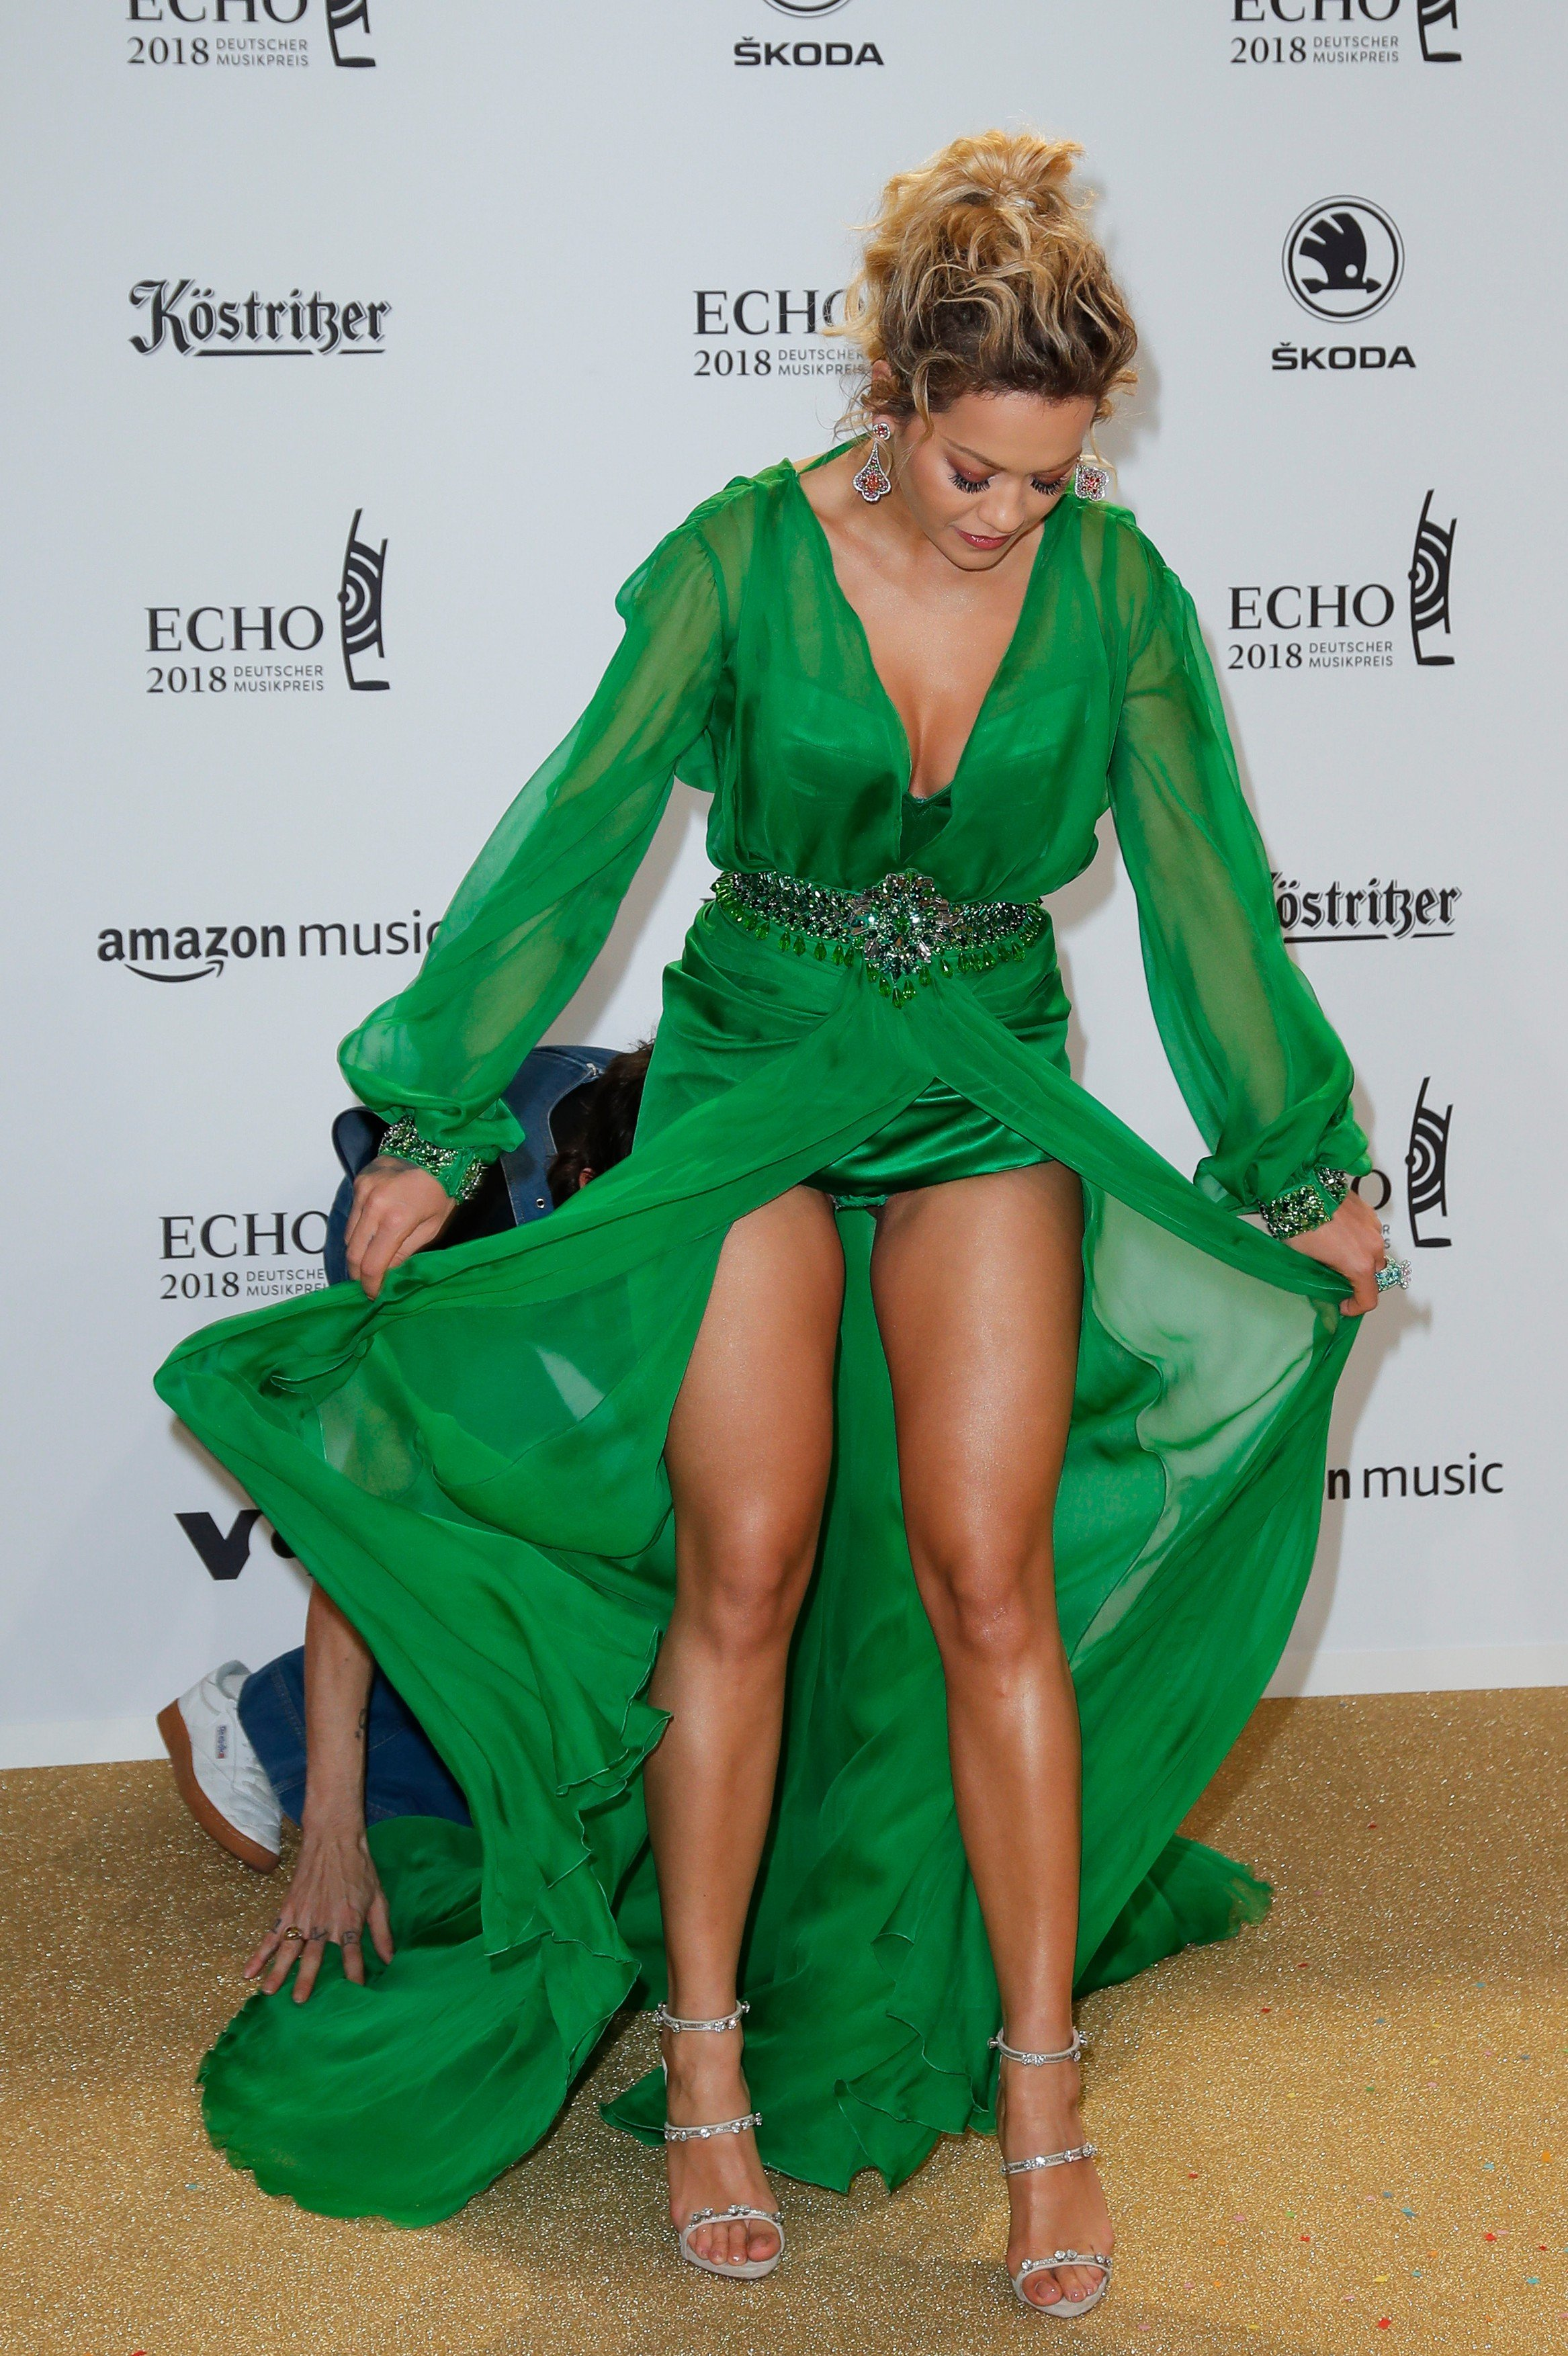 Rita Ora Echo Music Awards 2018 at the Messe Berlin, Berlin, Germany - 12 Apr 2018, Image: 368404102, License: Rights-managed, Restrictions: , Model Release: no, Credit line: Profimedia, TEMP Rex Features